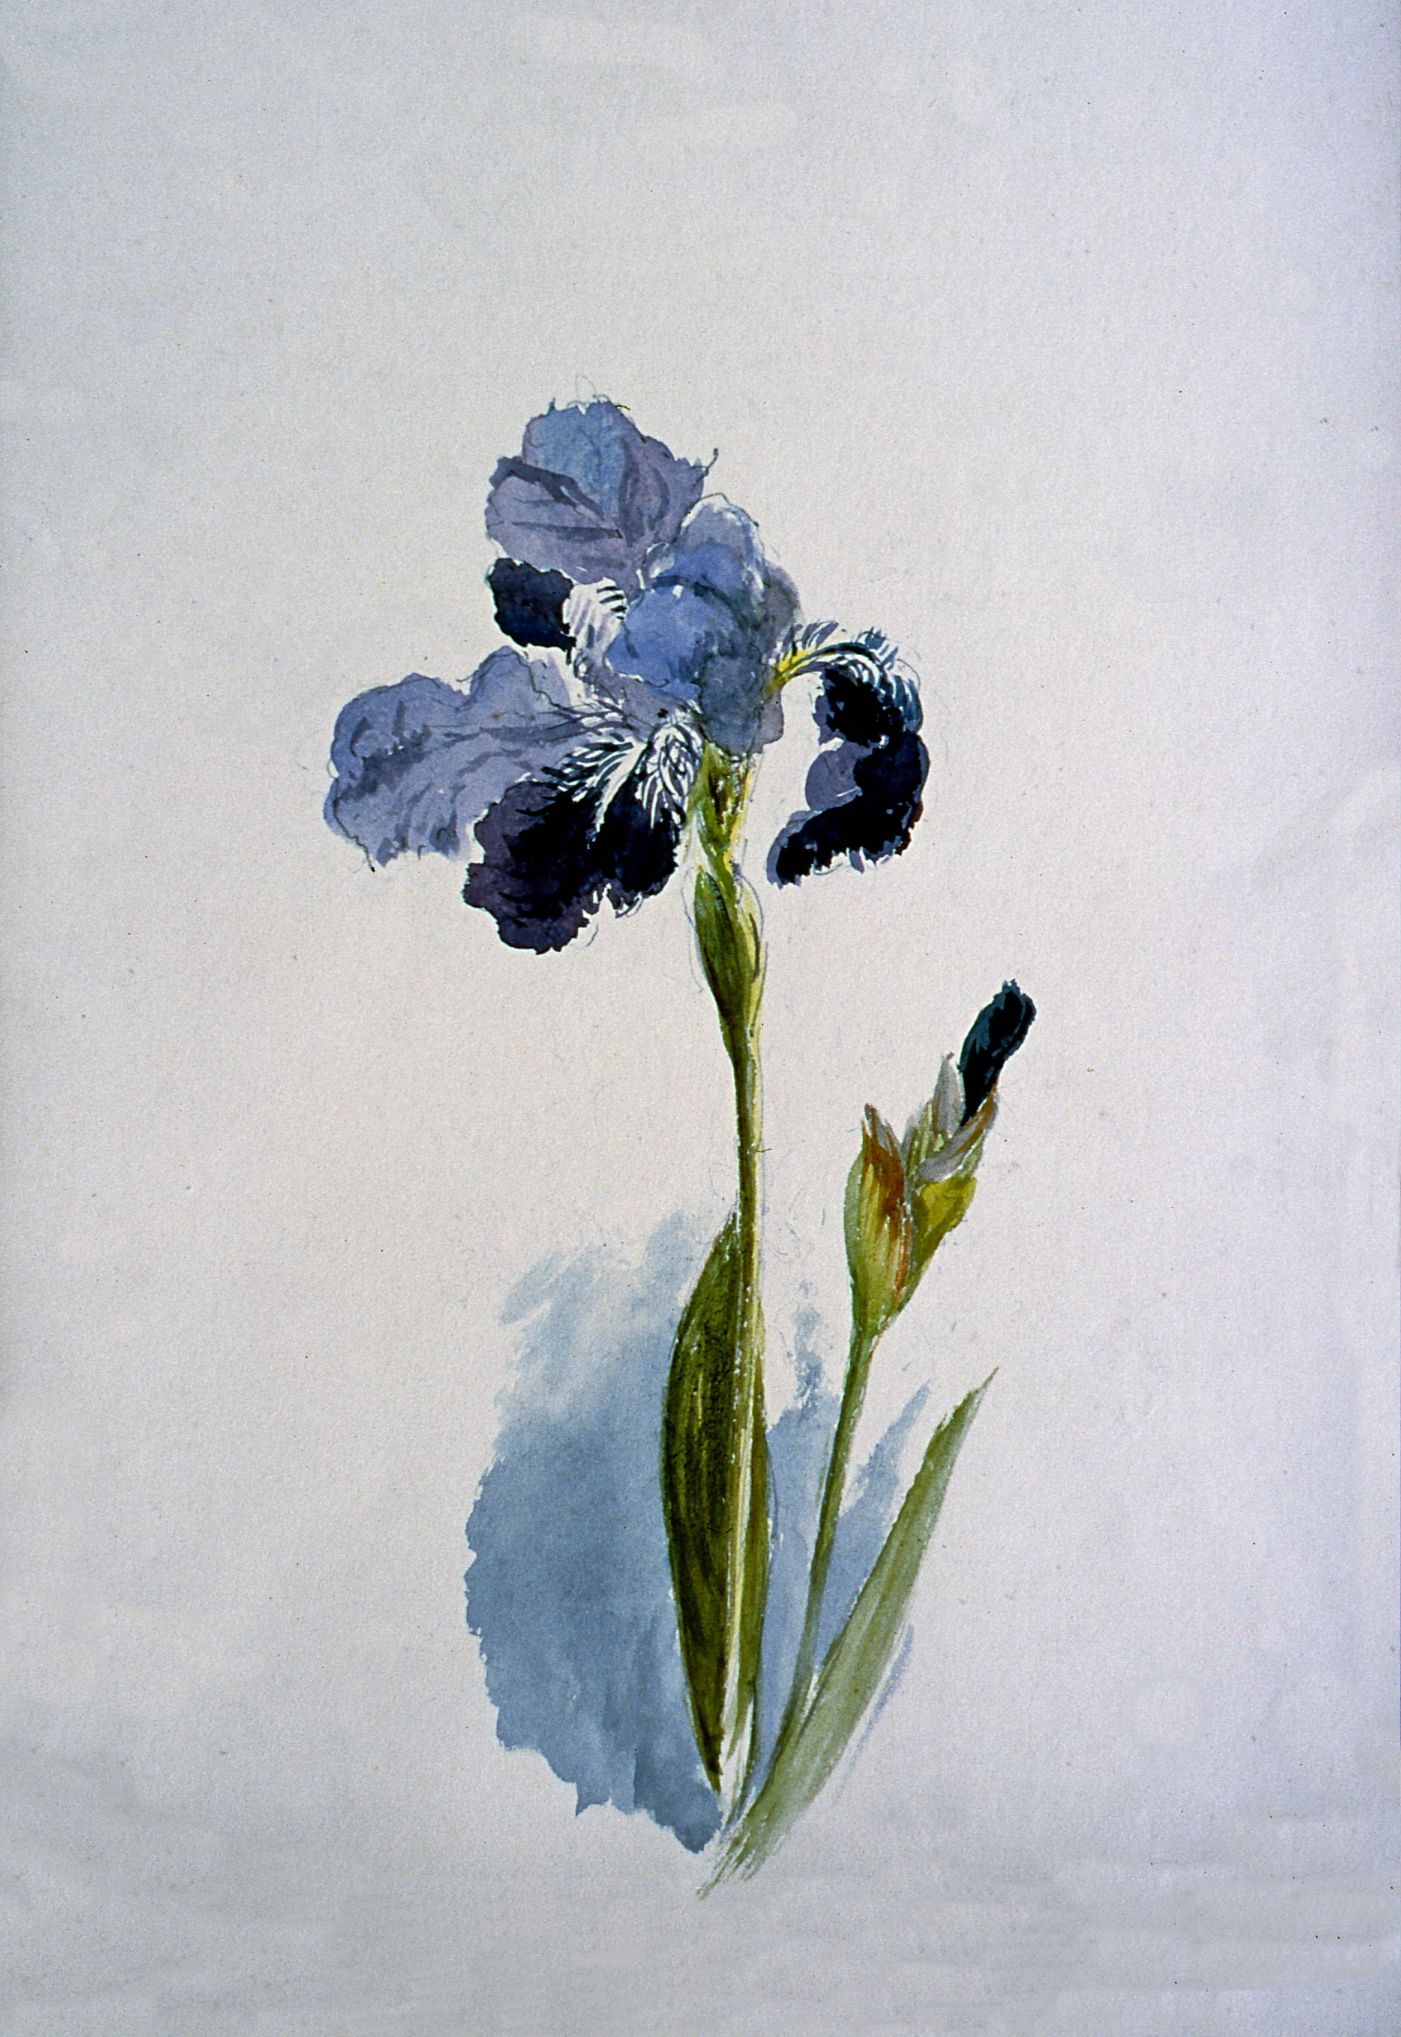 Untitled (Purple Iris), n.d. Julia Bullock Webster, watercolour on paper, 35.5 cm x 25.2 cm, 2003.02.15, gift of The Grist Mill at Keremeos